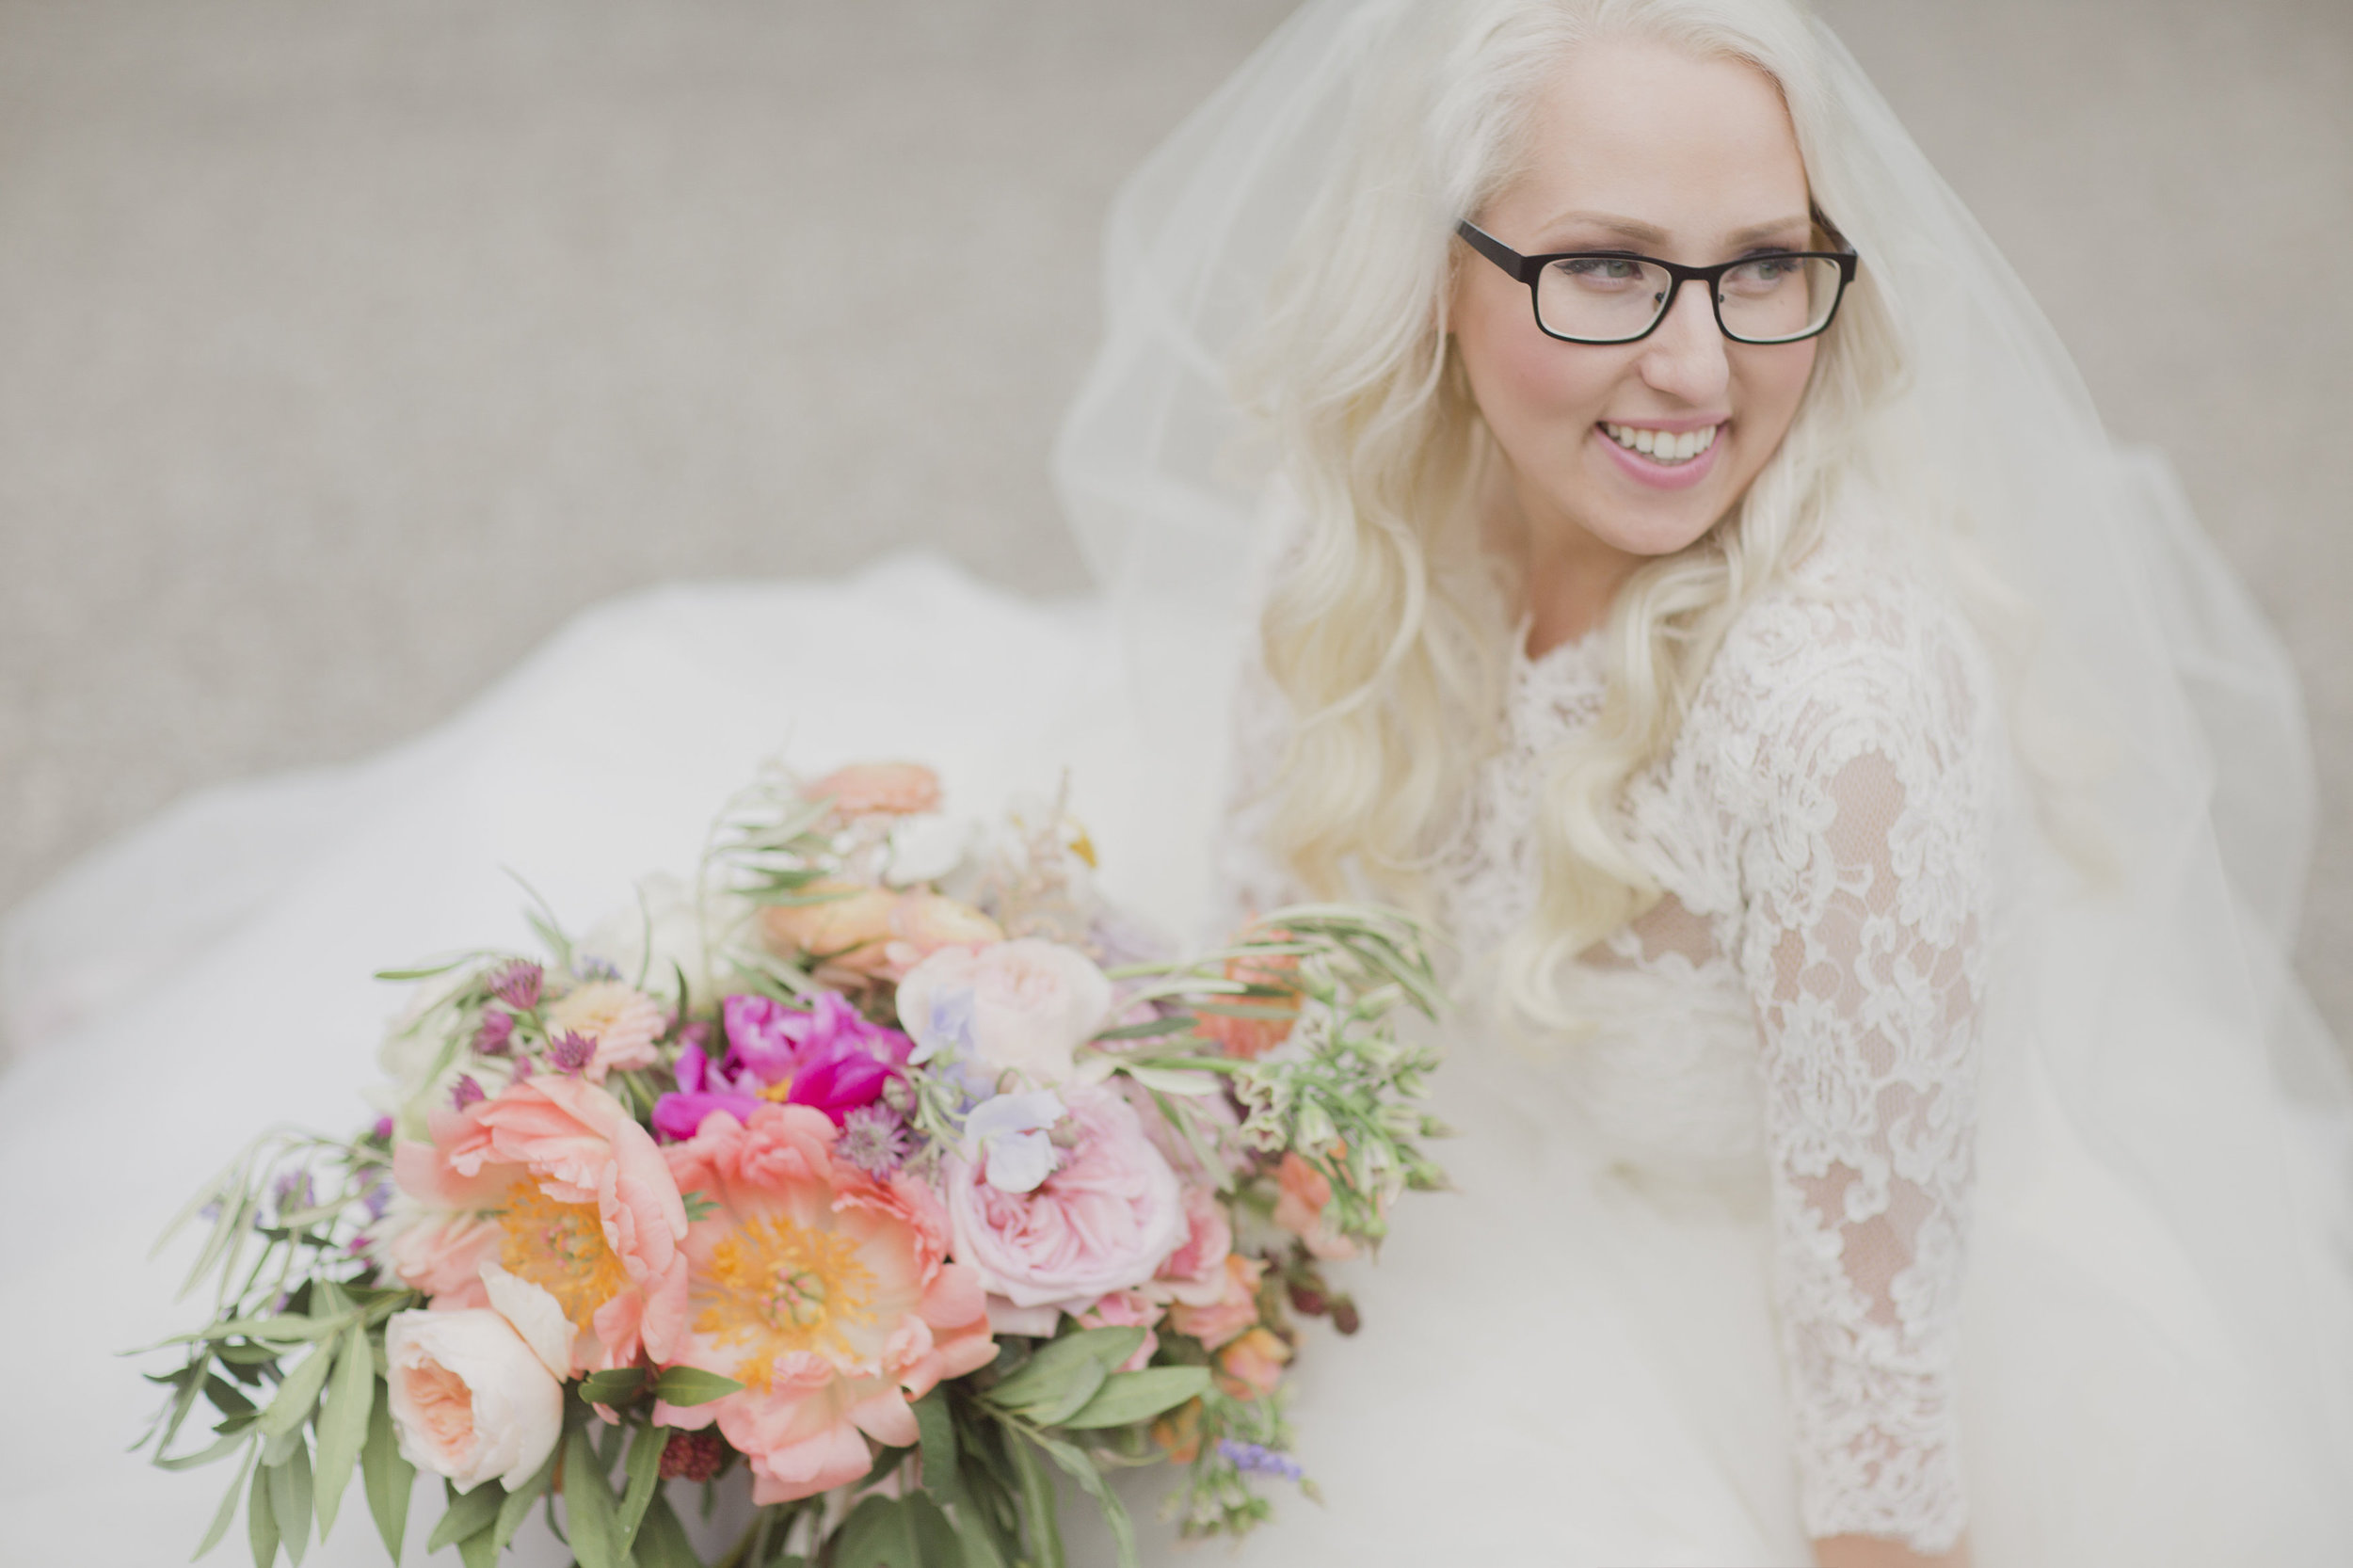 Image courtesy of   Elizabeth in Love Photography